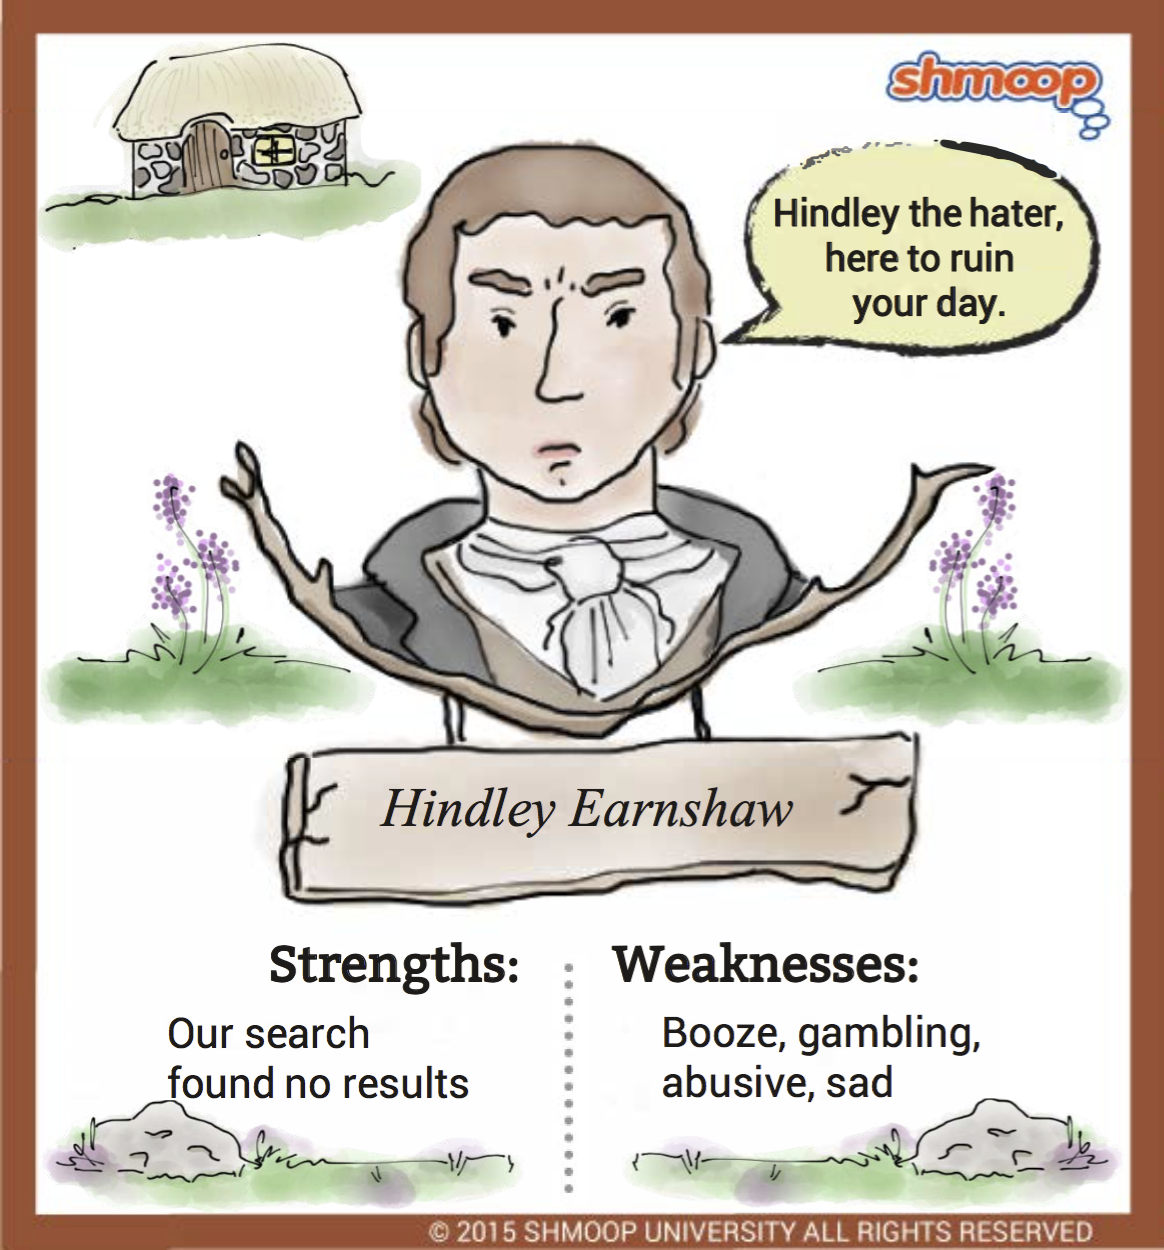 wuthering heights catherine and heathcliff essay Catherine and heathcliff in wuthering heights with the death of catherine, the reader is inclined to examine the causes cathy herself states that edgar linton and.